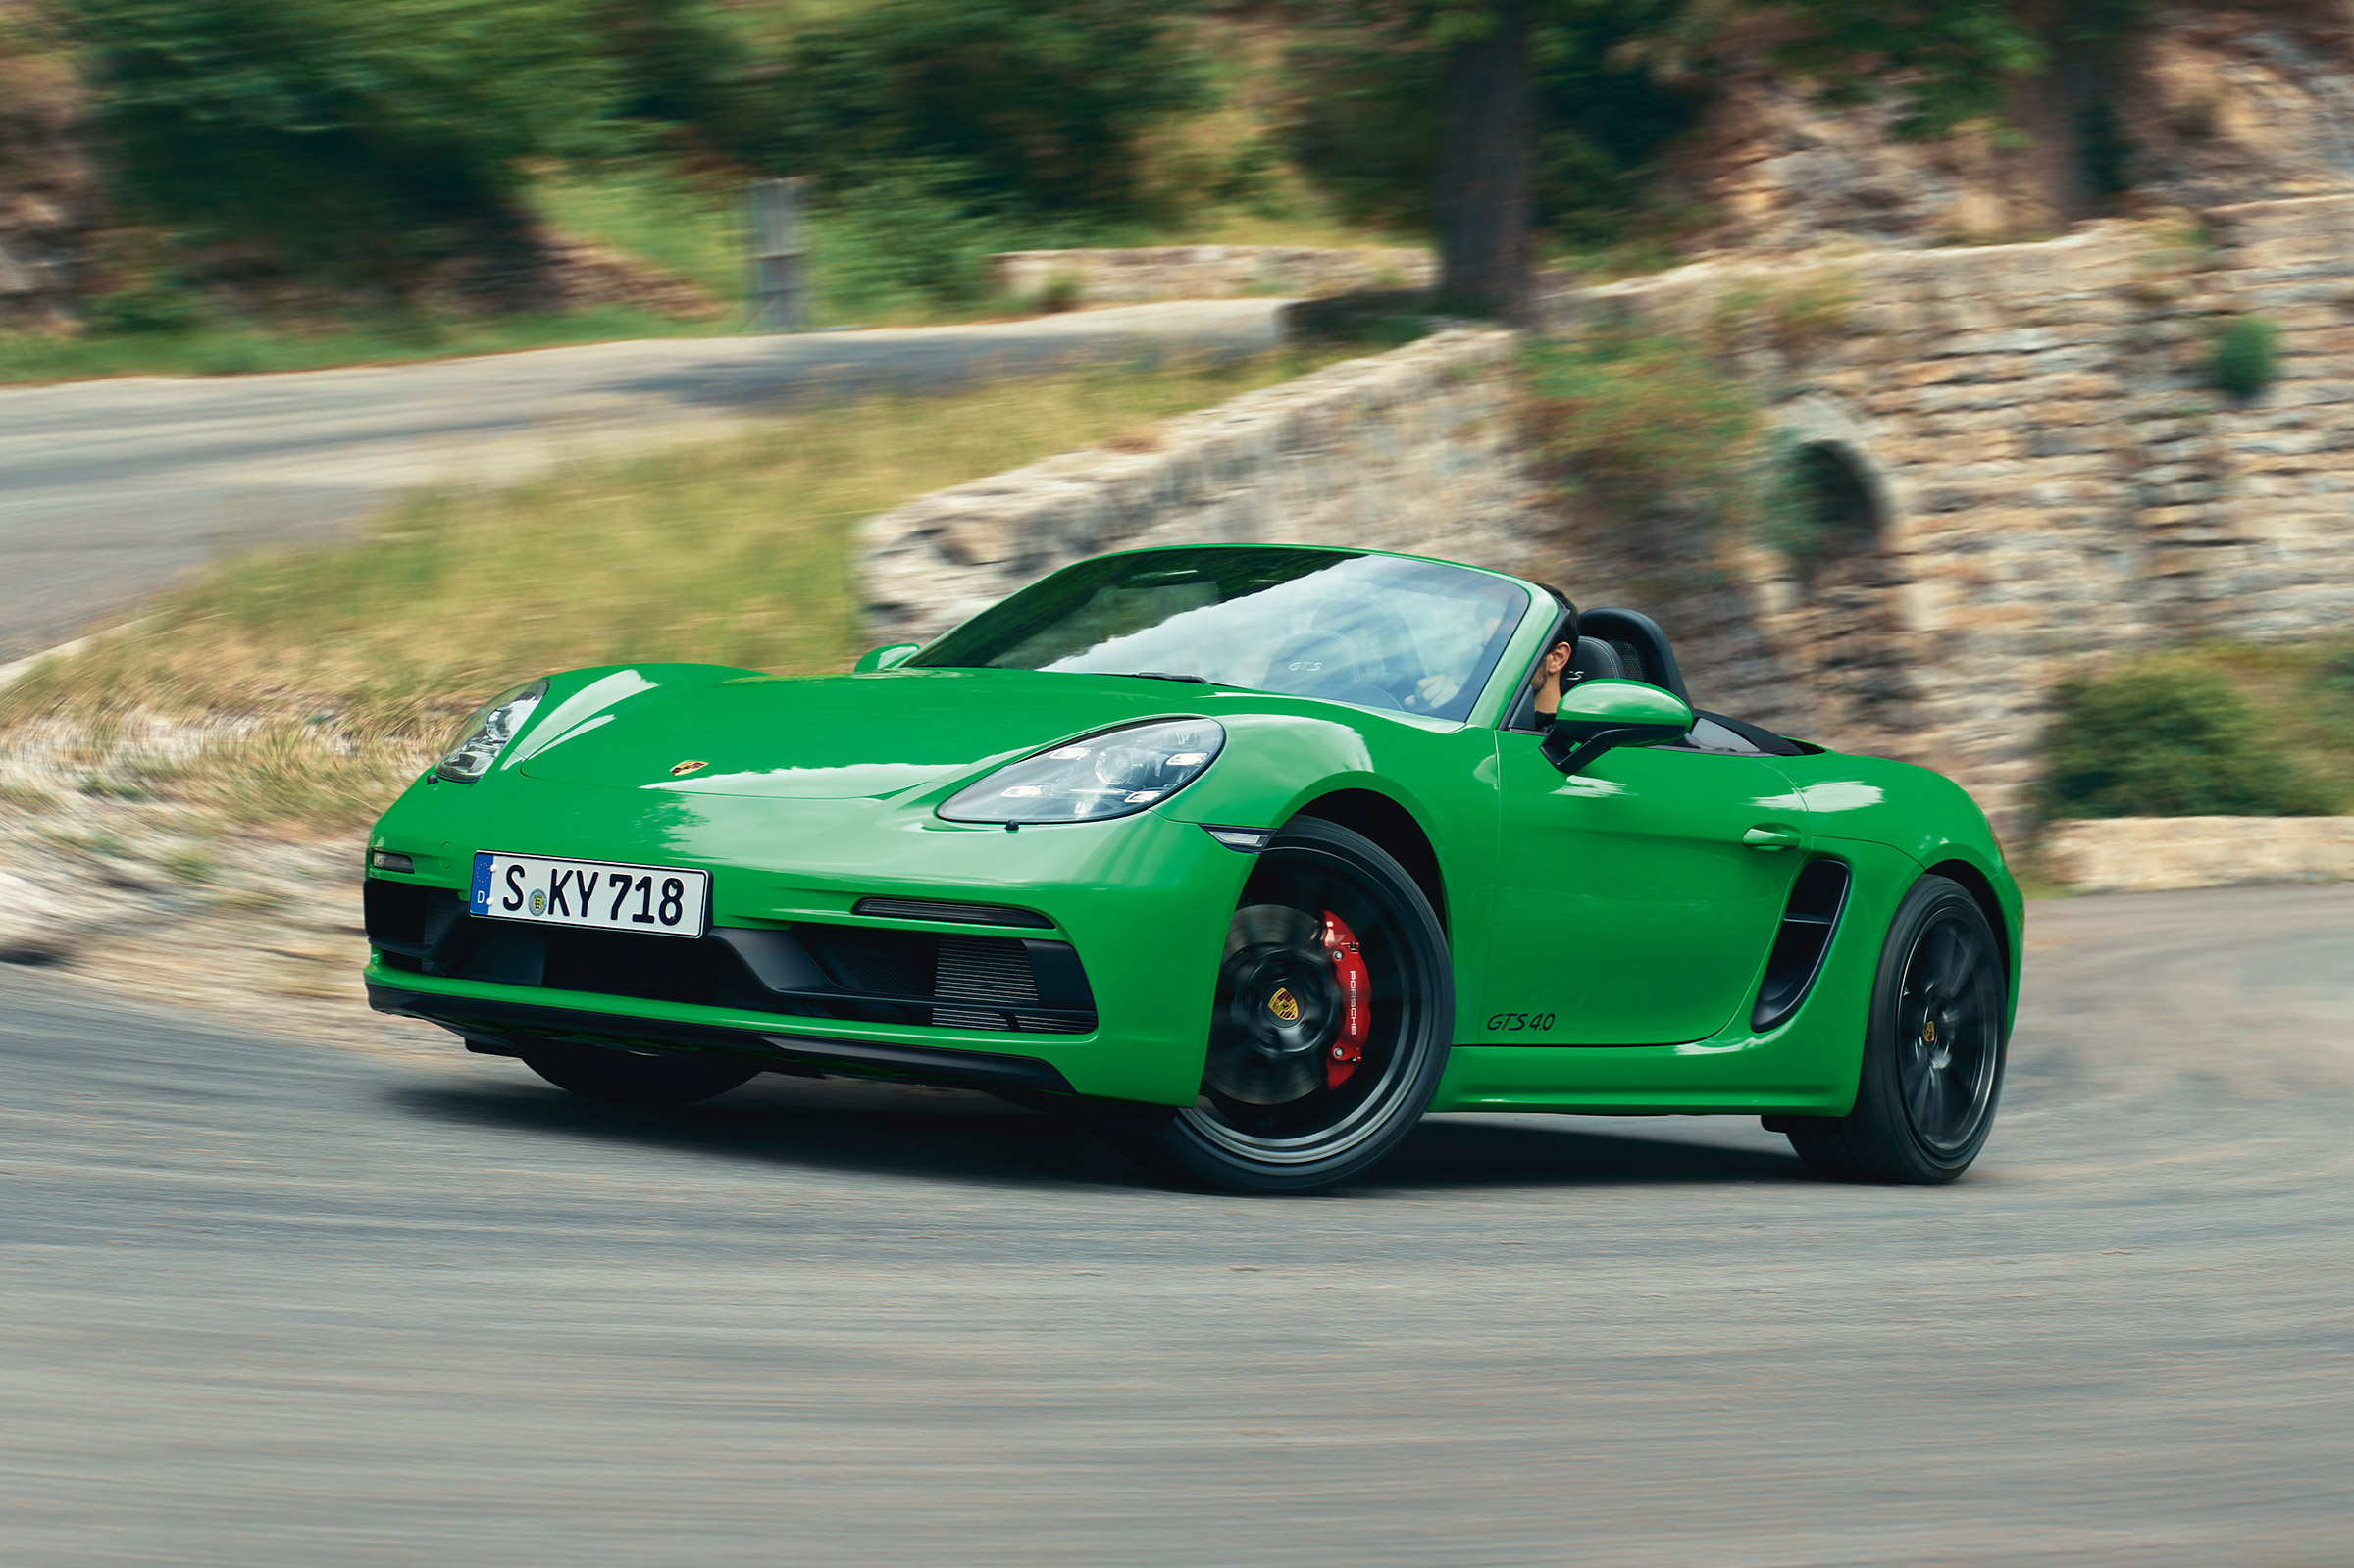 New Six Cylinder Porsche 718 Boxster And Cayman Gts 4 0 Revealed Auto Express